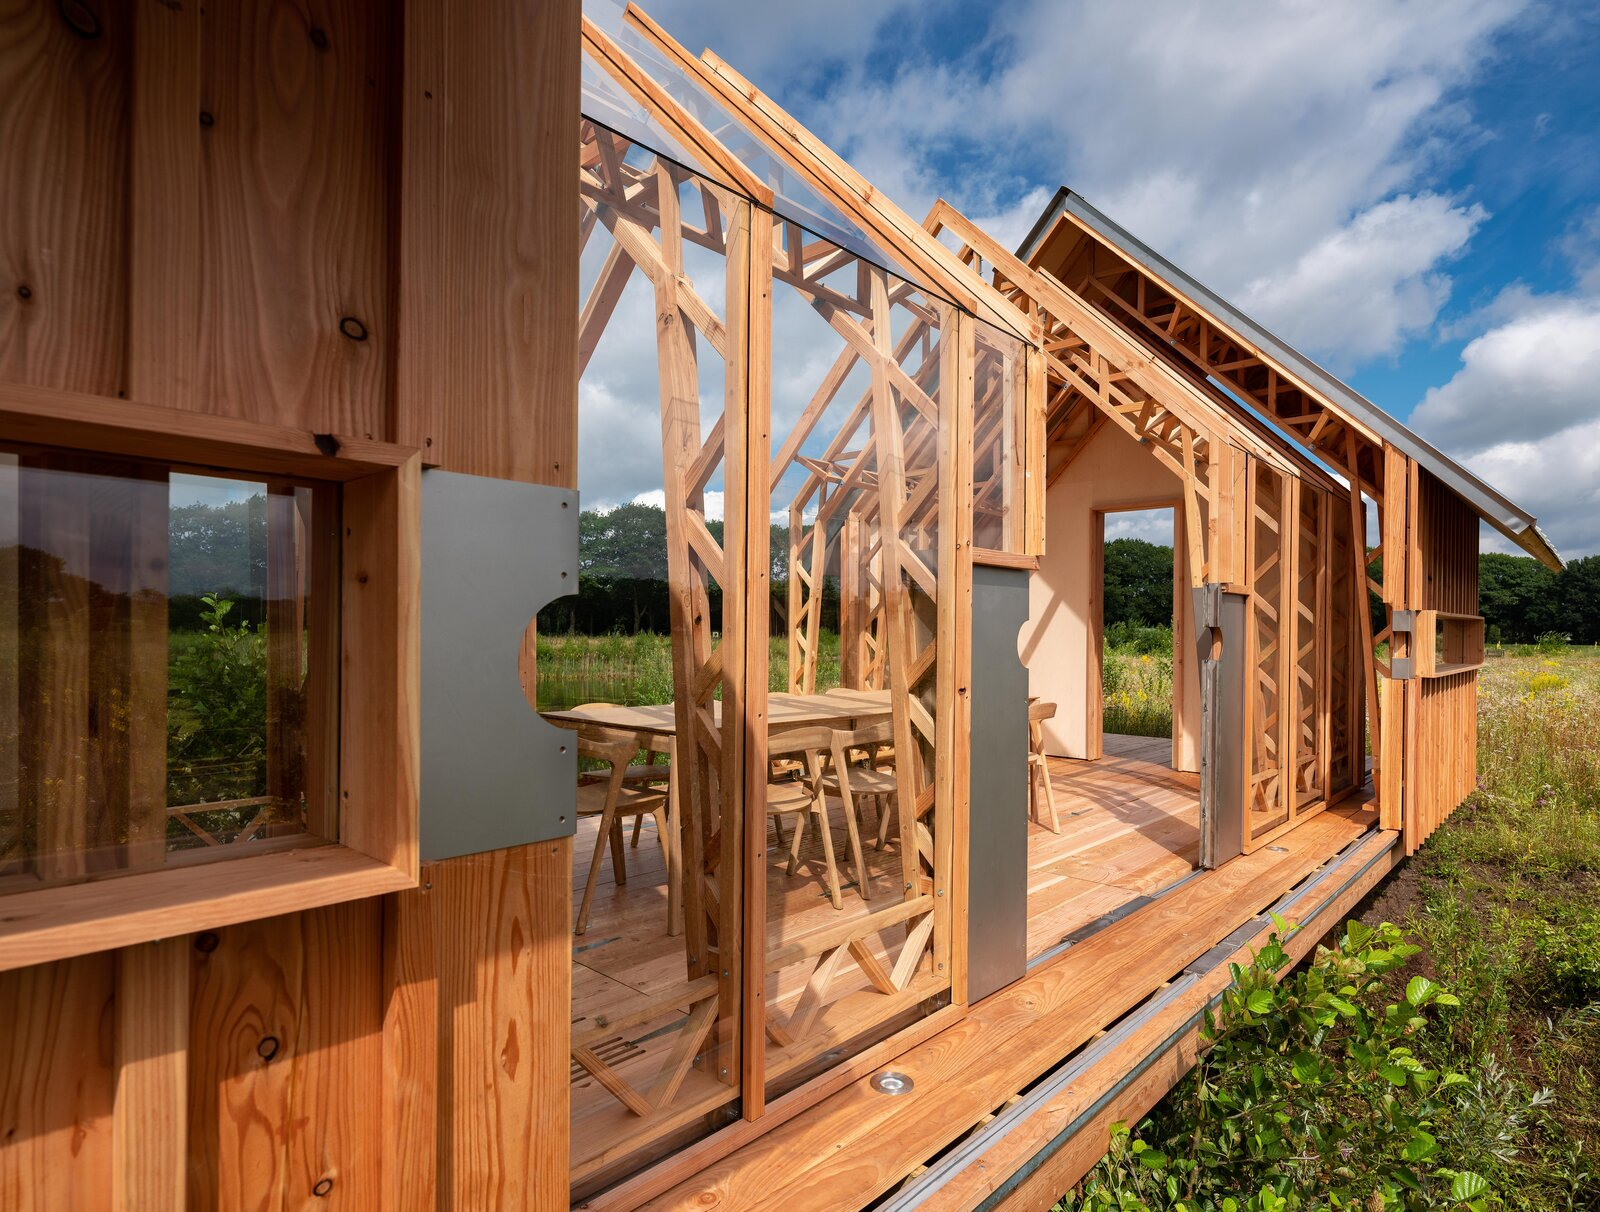 """Metal """"doors"""" with circular openings mark where to push the walls along their tracks. The structure relies on its side walls' wood trusses for structural integrity, as seen in railway stations.  Photo 6 of 21 in This Ultra-Versatile Prefab Cabin Can Shed Its Layers of Wood and Glass"""